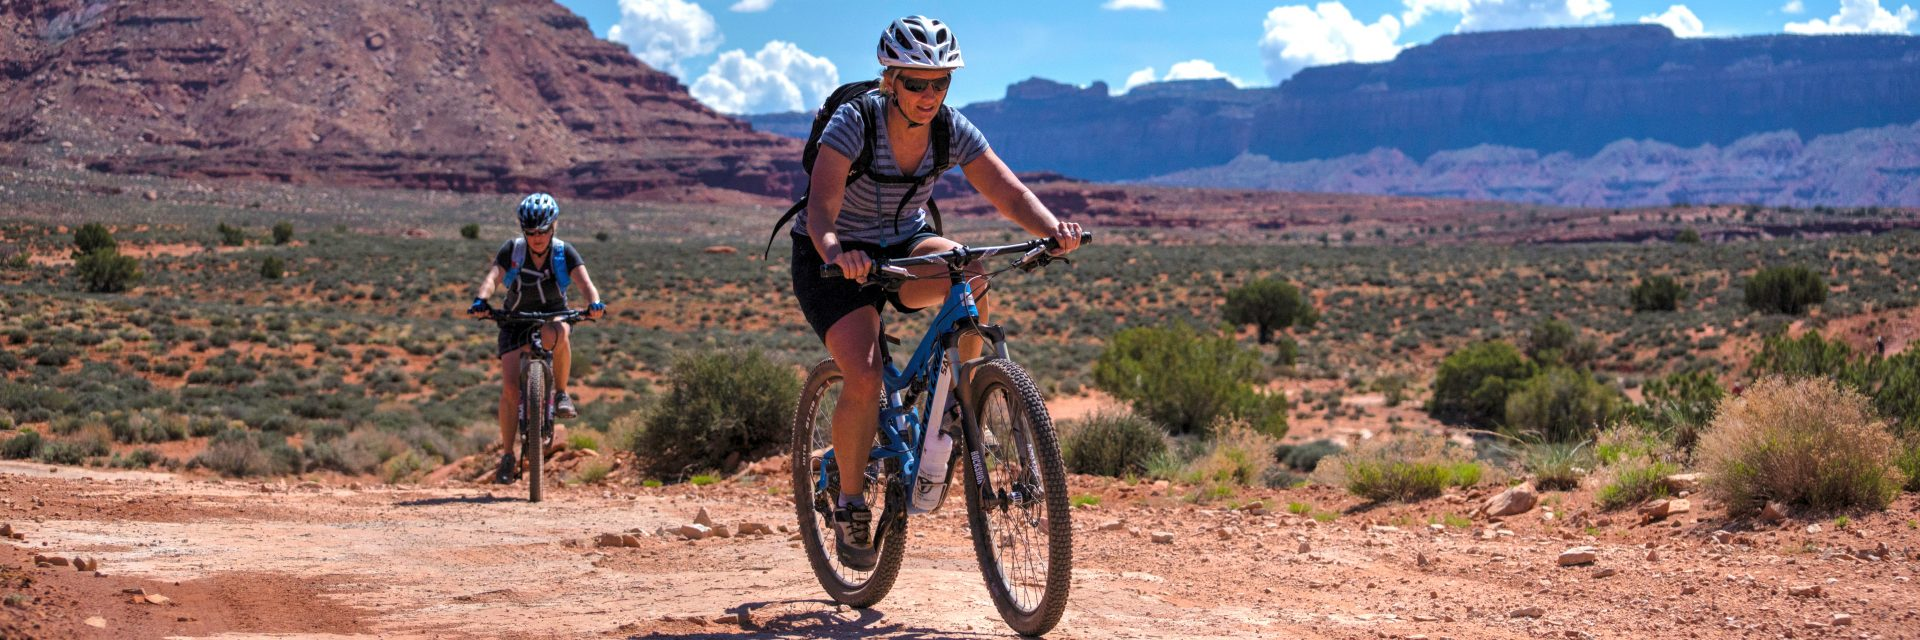 Approaching Lockhart Basin, Needles to Moab guided mountain bike tour